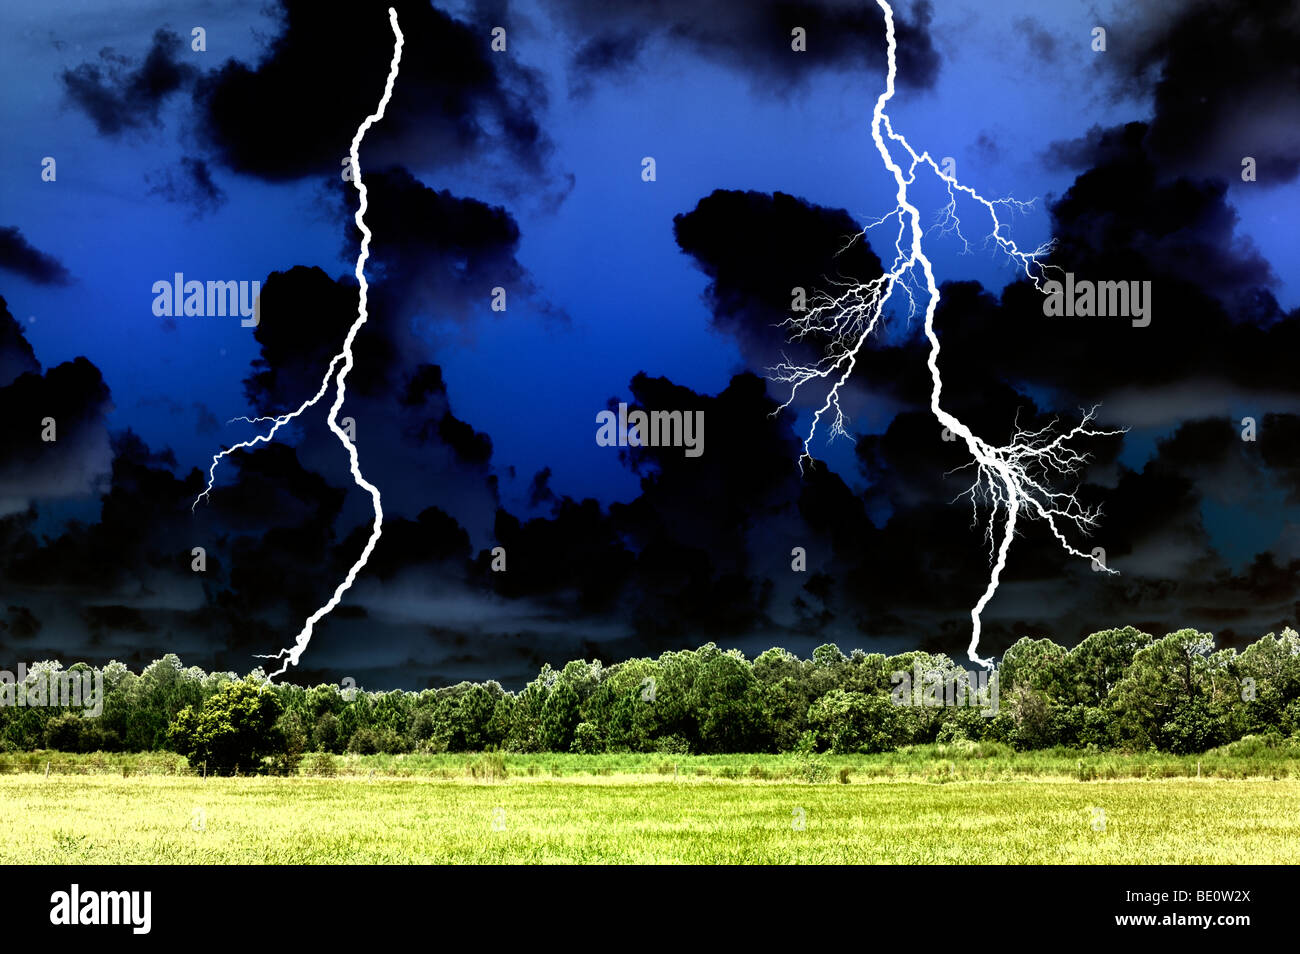 lightning bolts in field - Stock Image